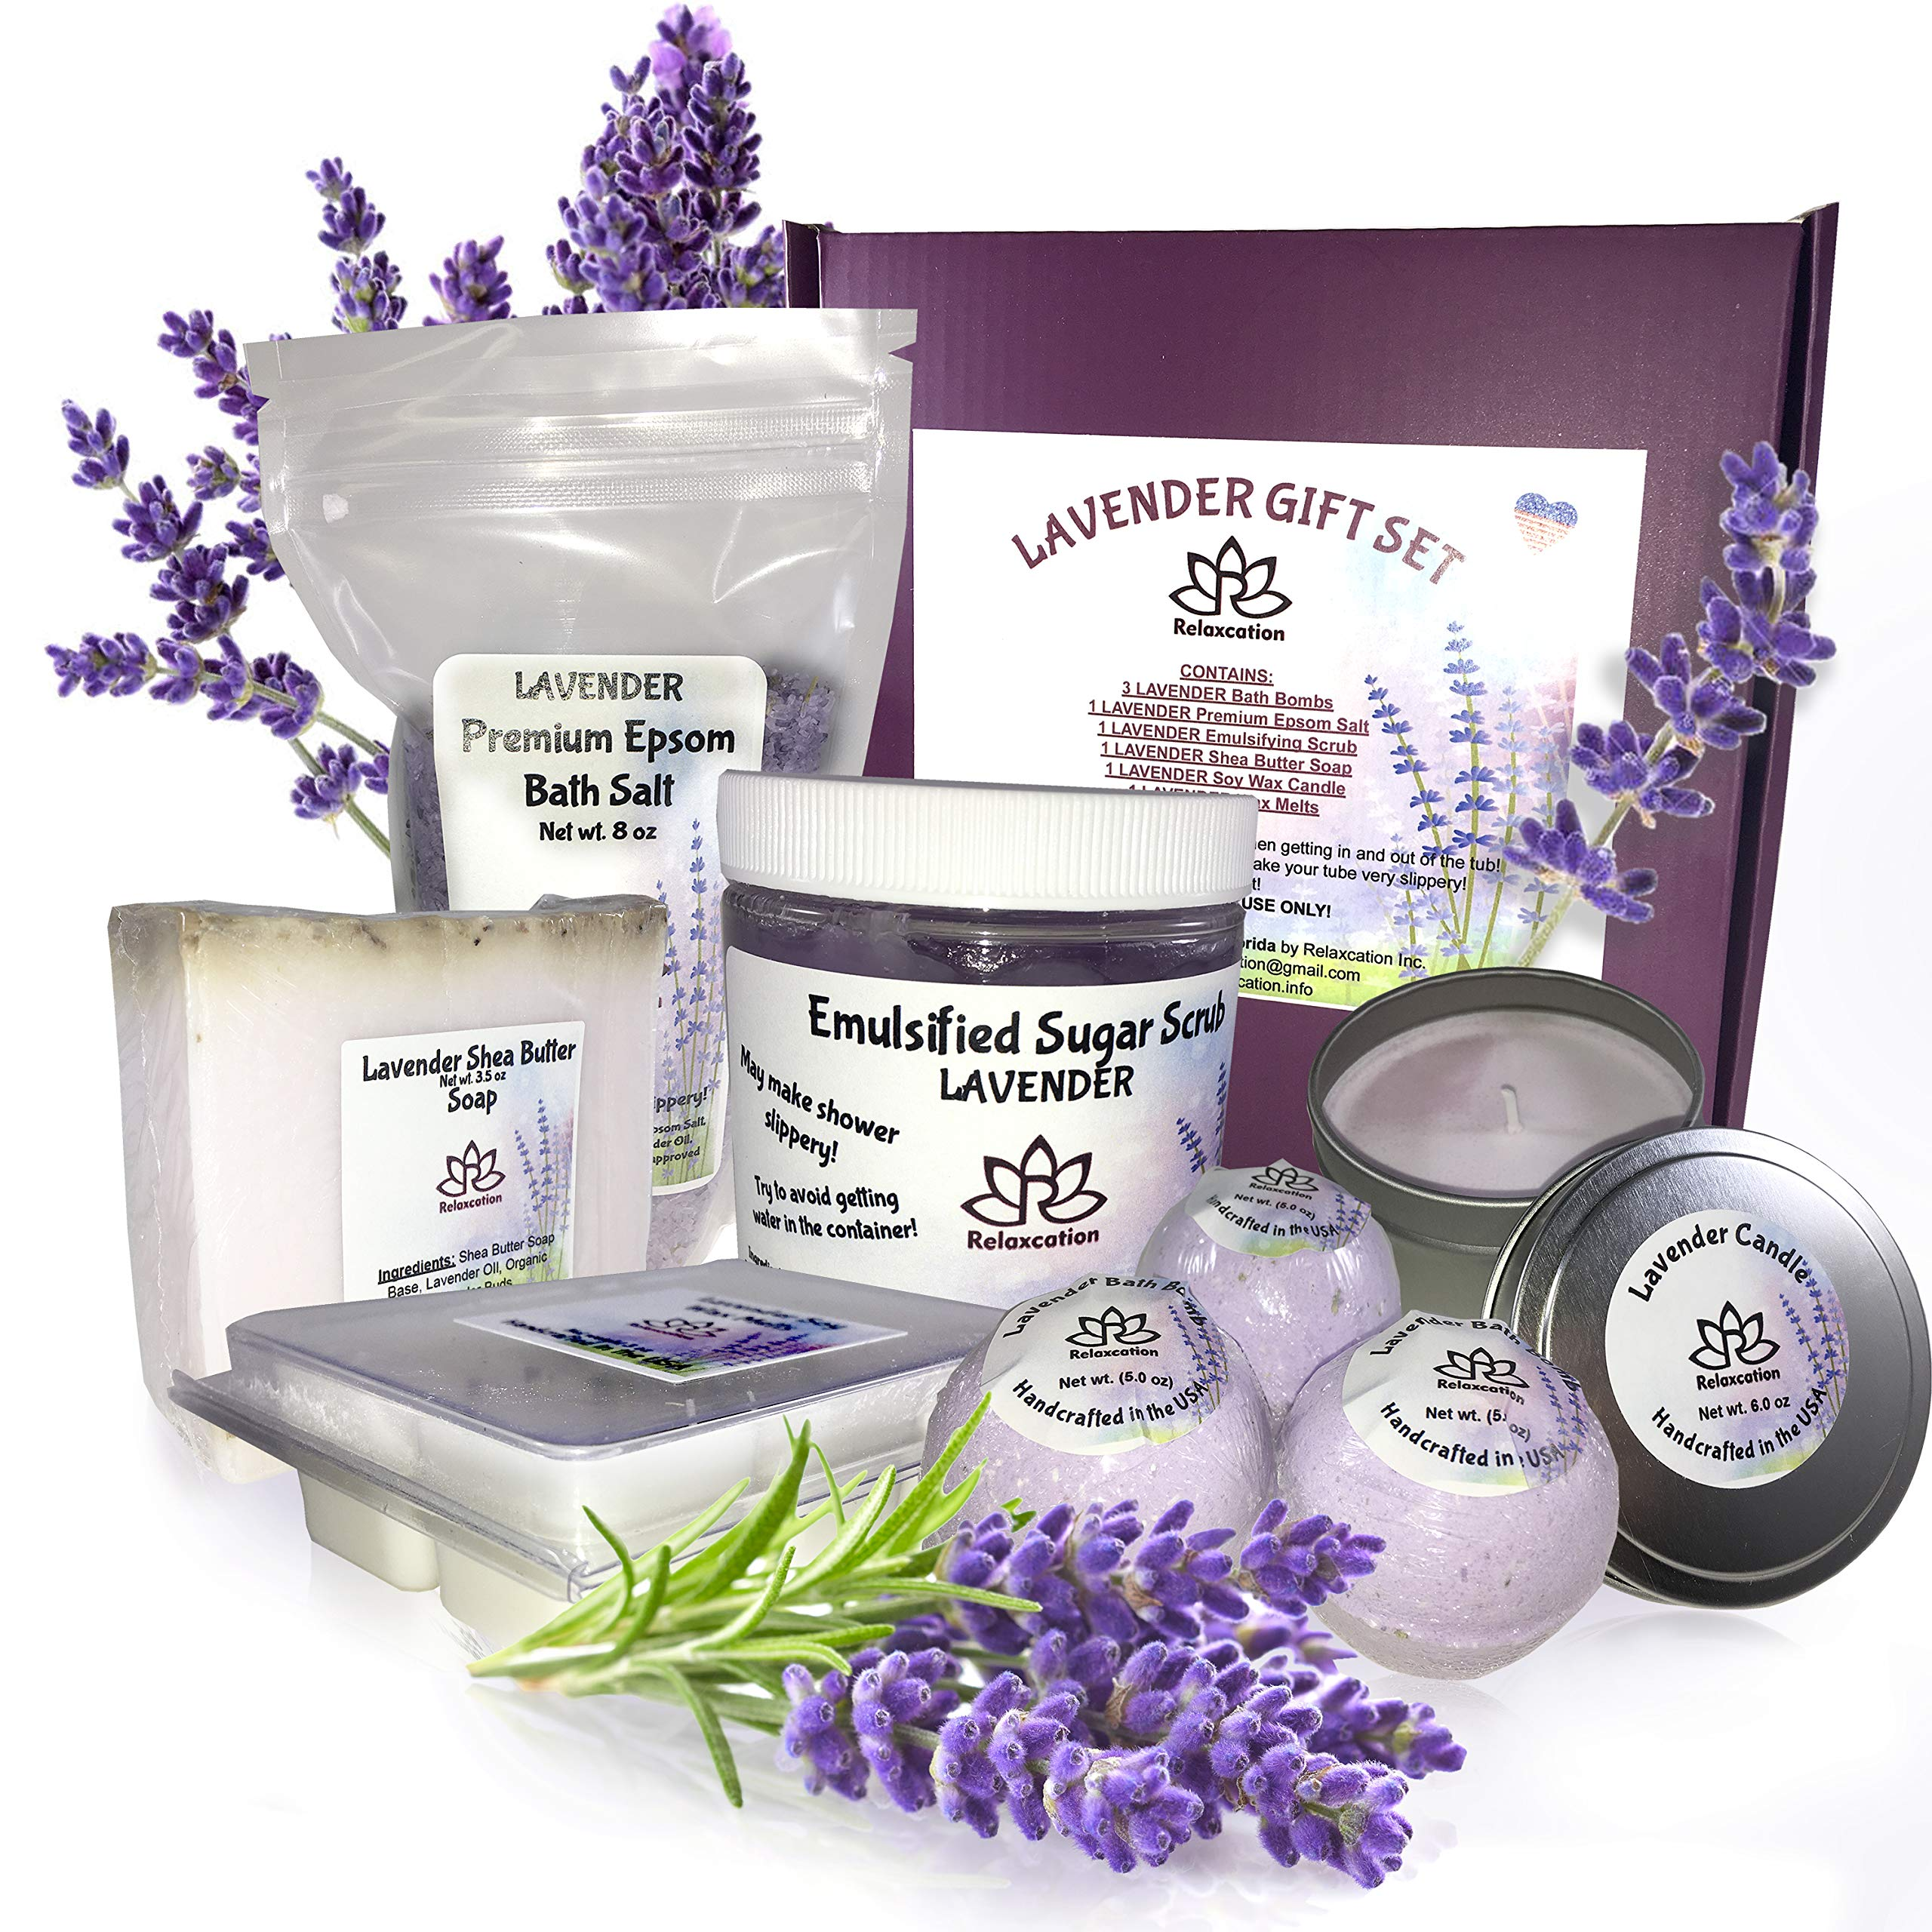 Lavender Gift Set For Women - All Natural Spa Basket - Soy Candles Organic Oil Bath Bombs Hand Soap Natural Body Sugar Scrub Best Holidays Gifts Kit Idea for Mom Girls Her Mother Grandma from Daughter